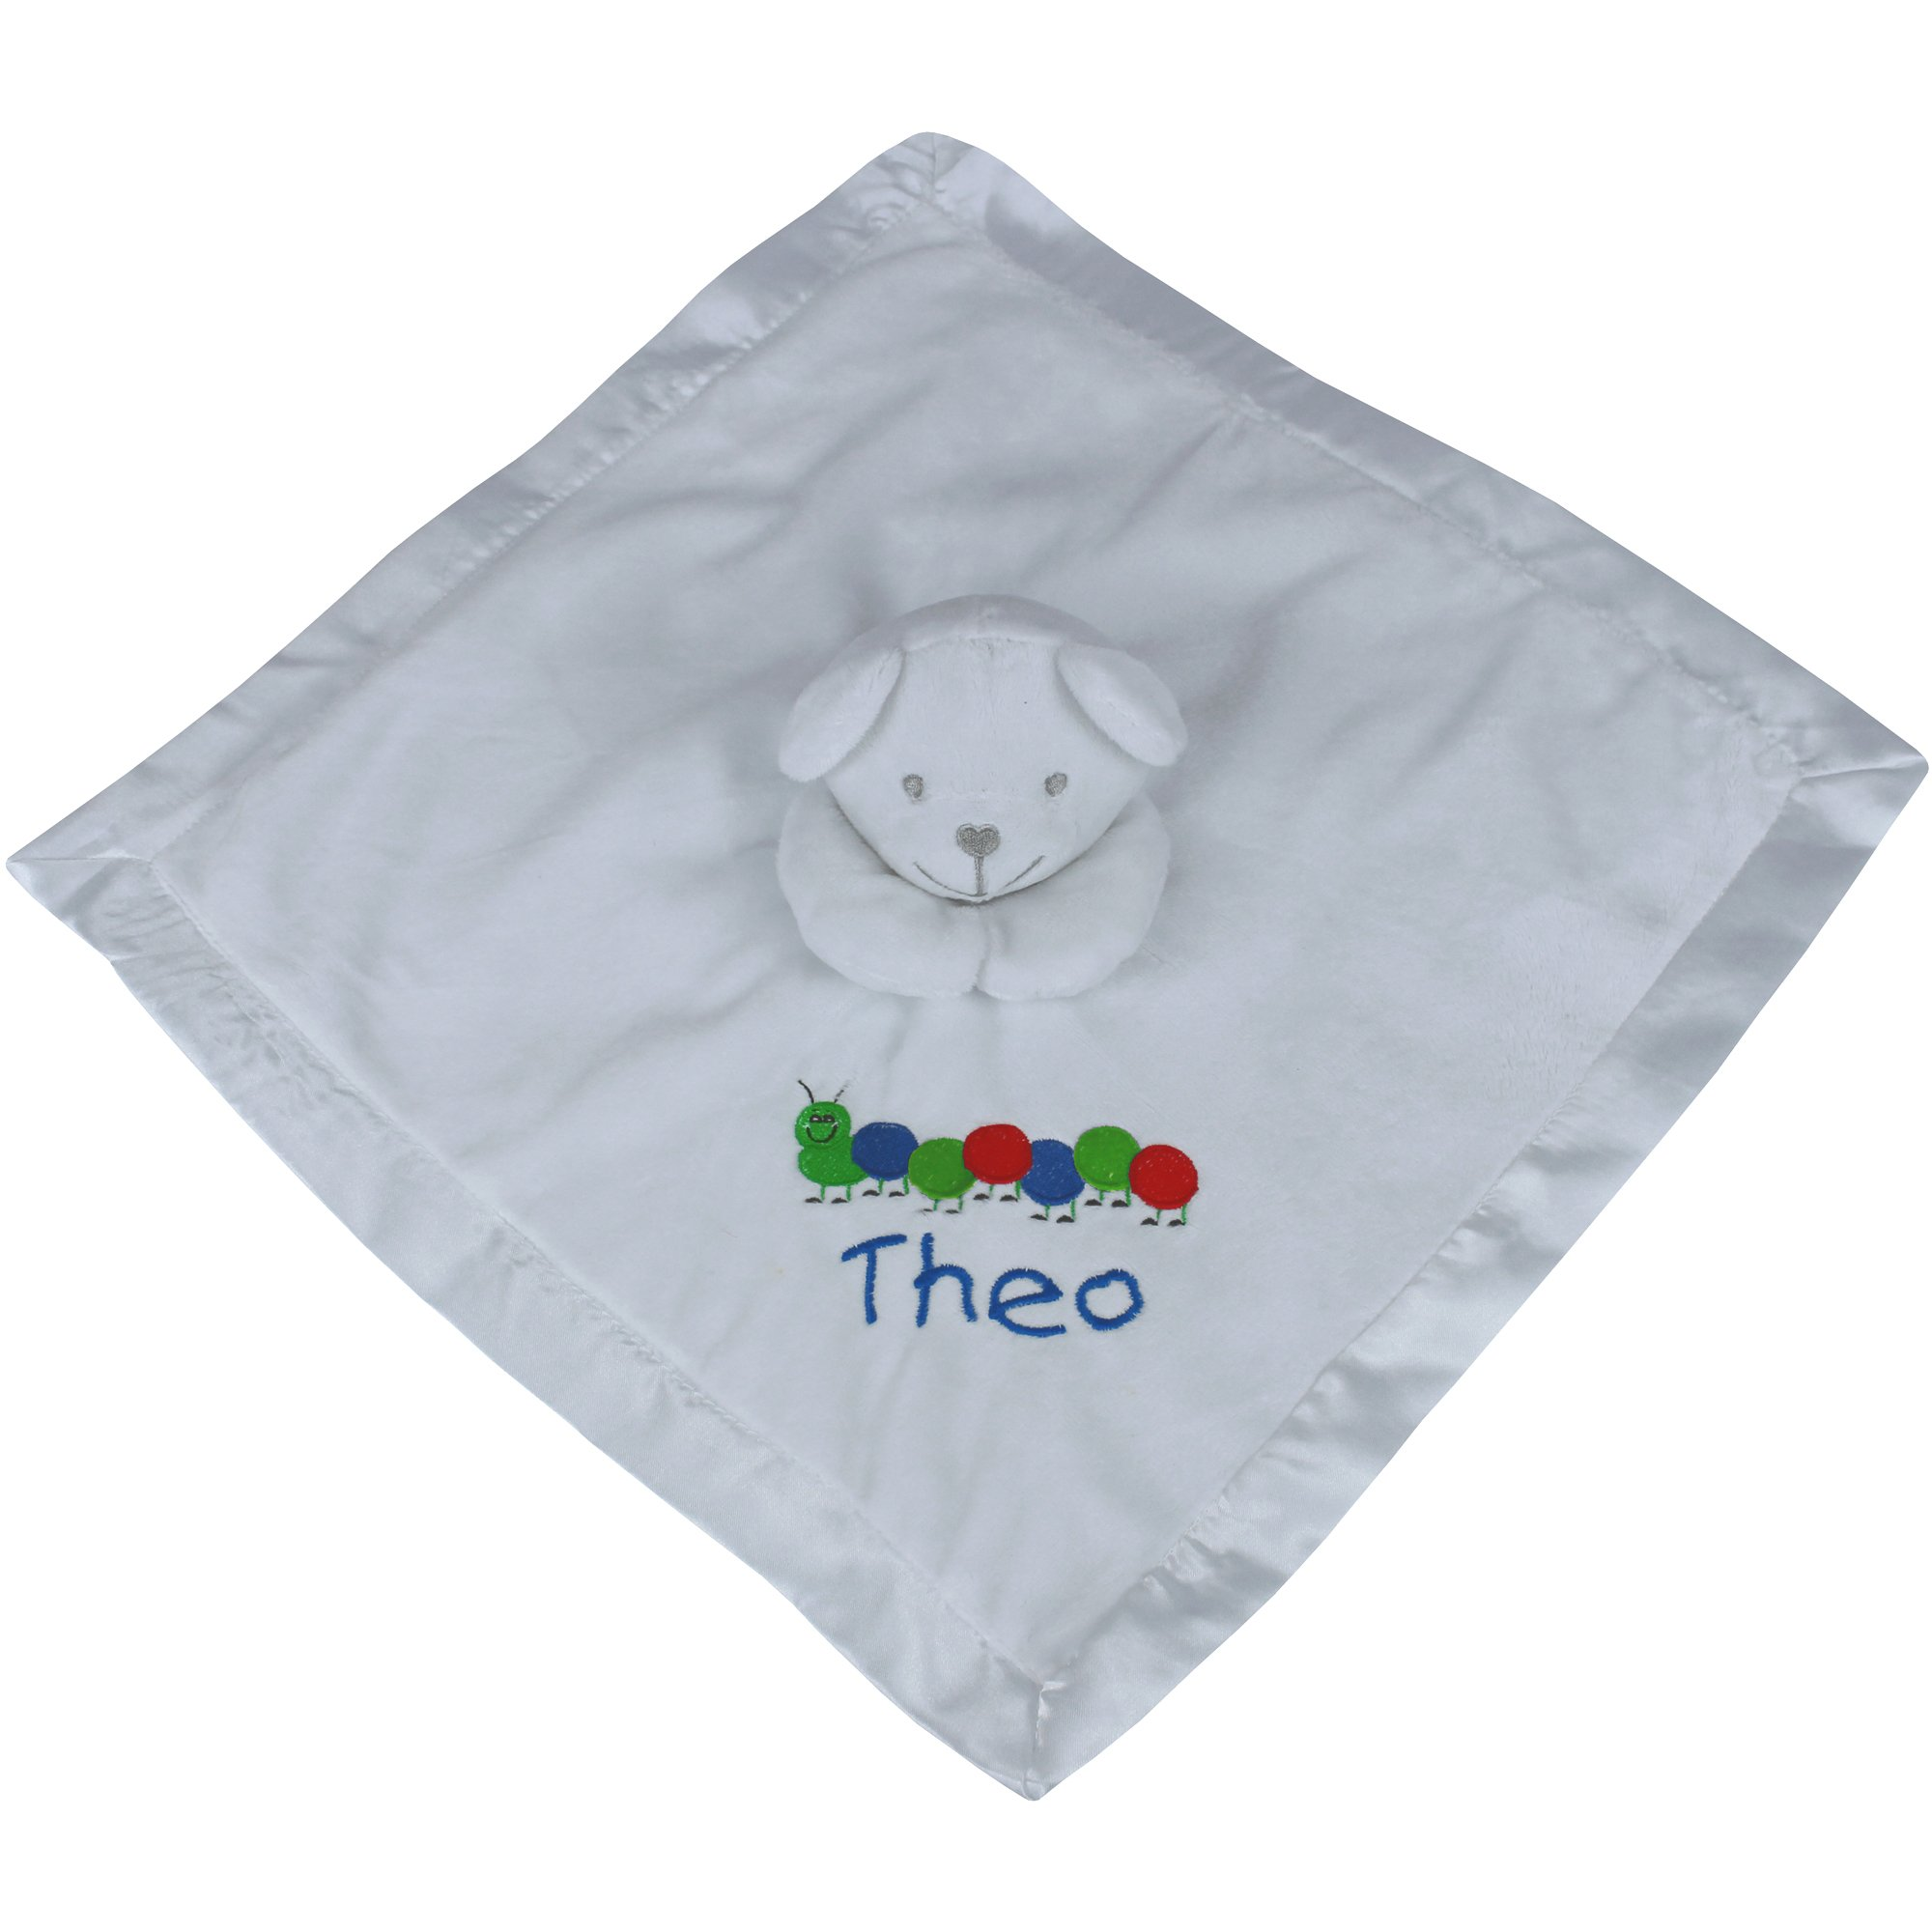 Baby Super Soft Personalised Comforter Blanket with Embroidered Caterpillar and 3D Teddy Bear (Baby Boy Blue)